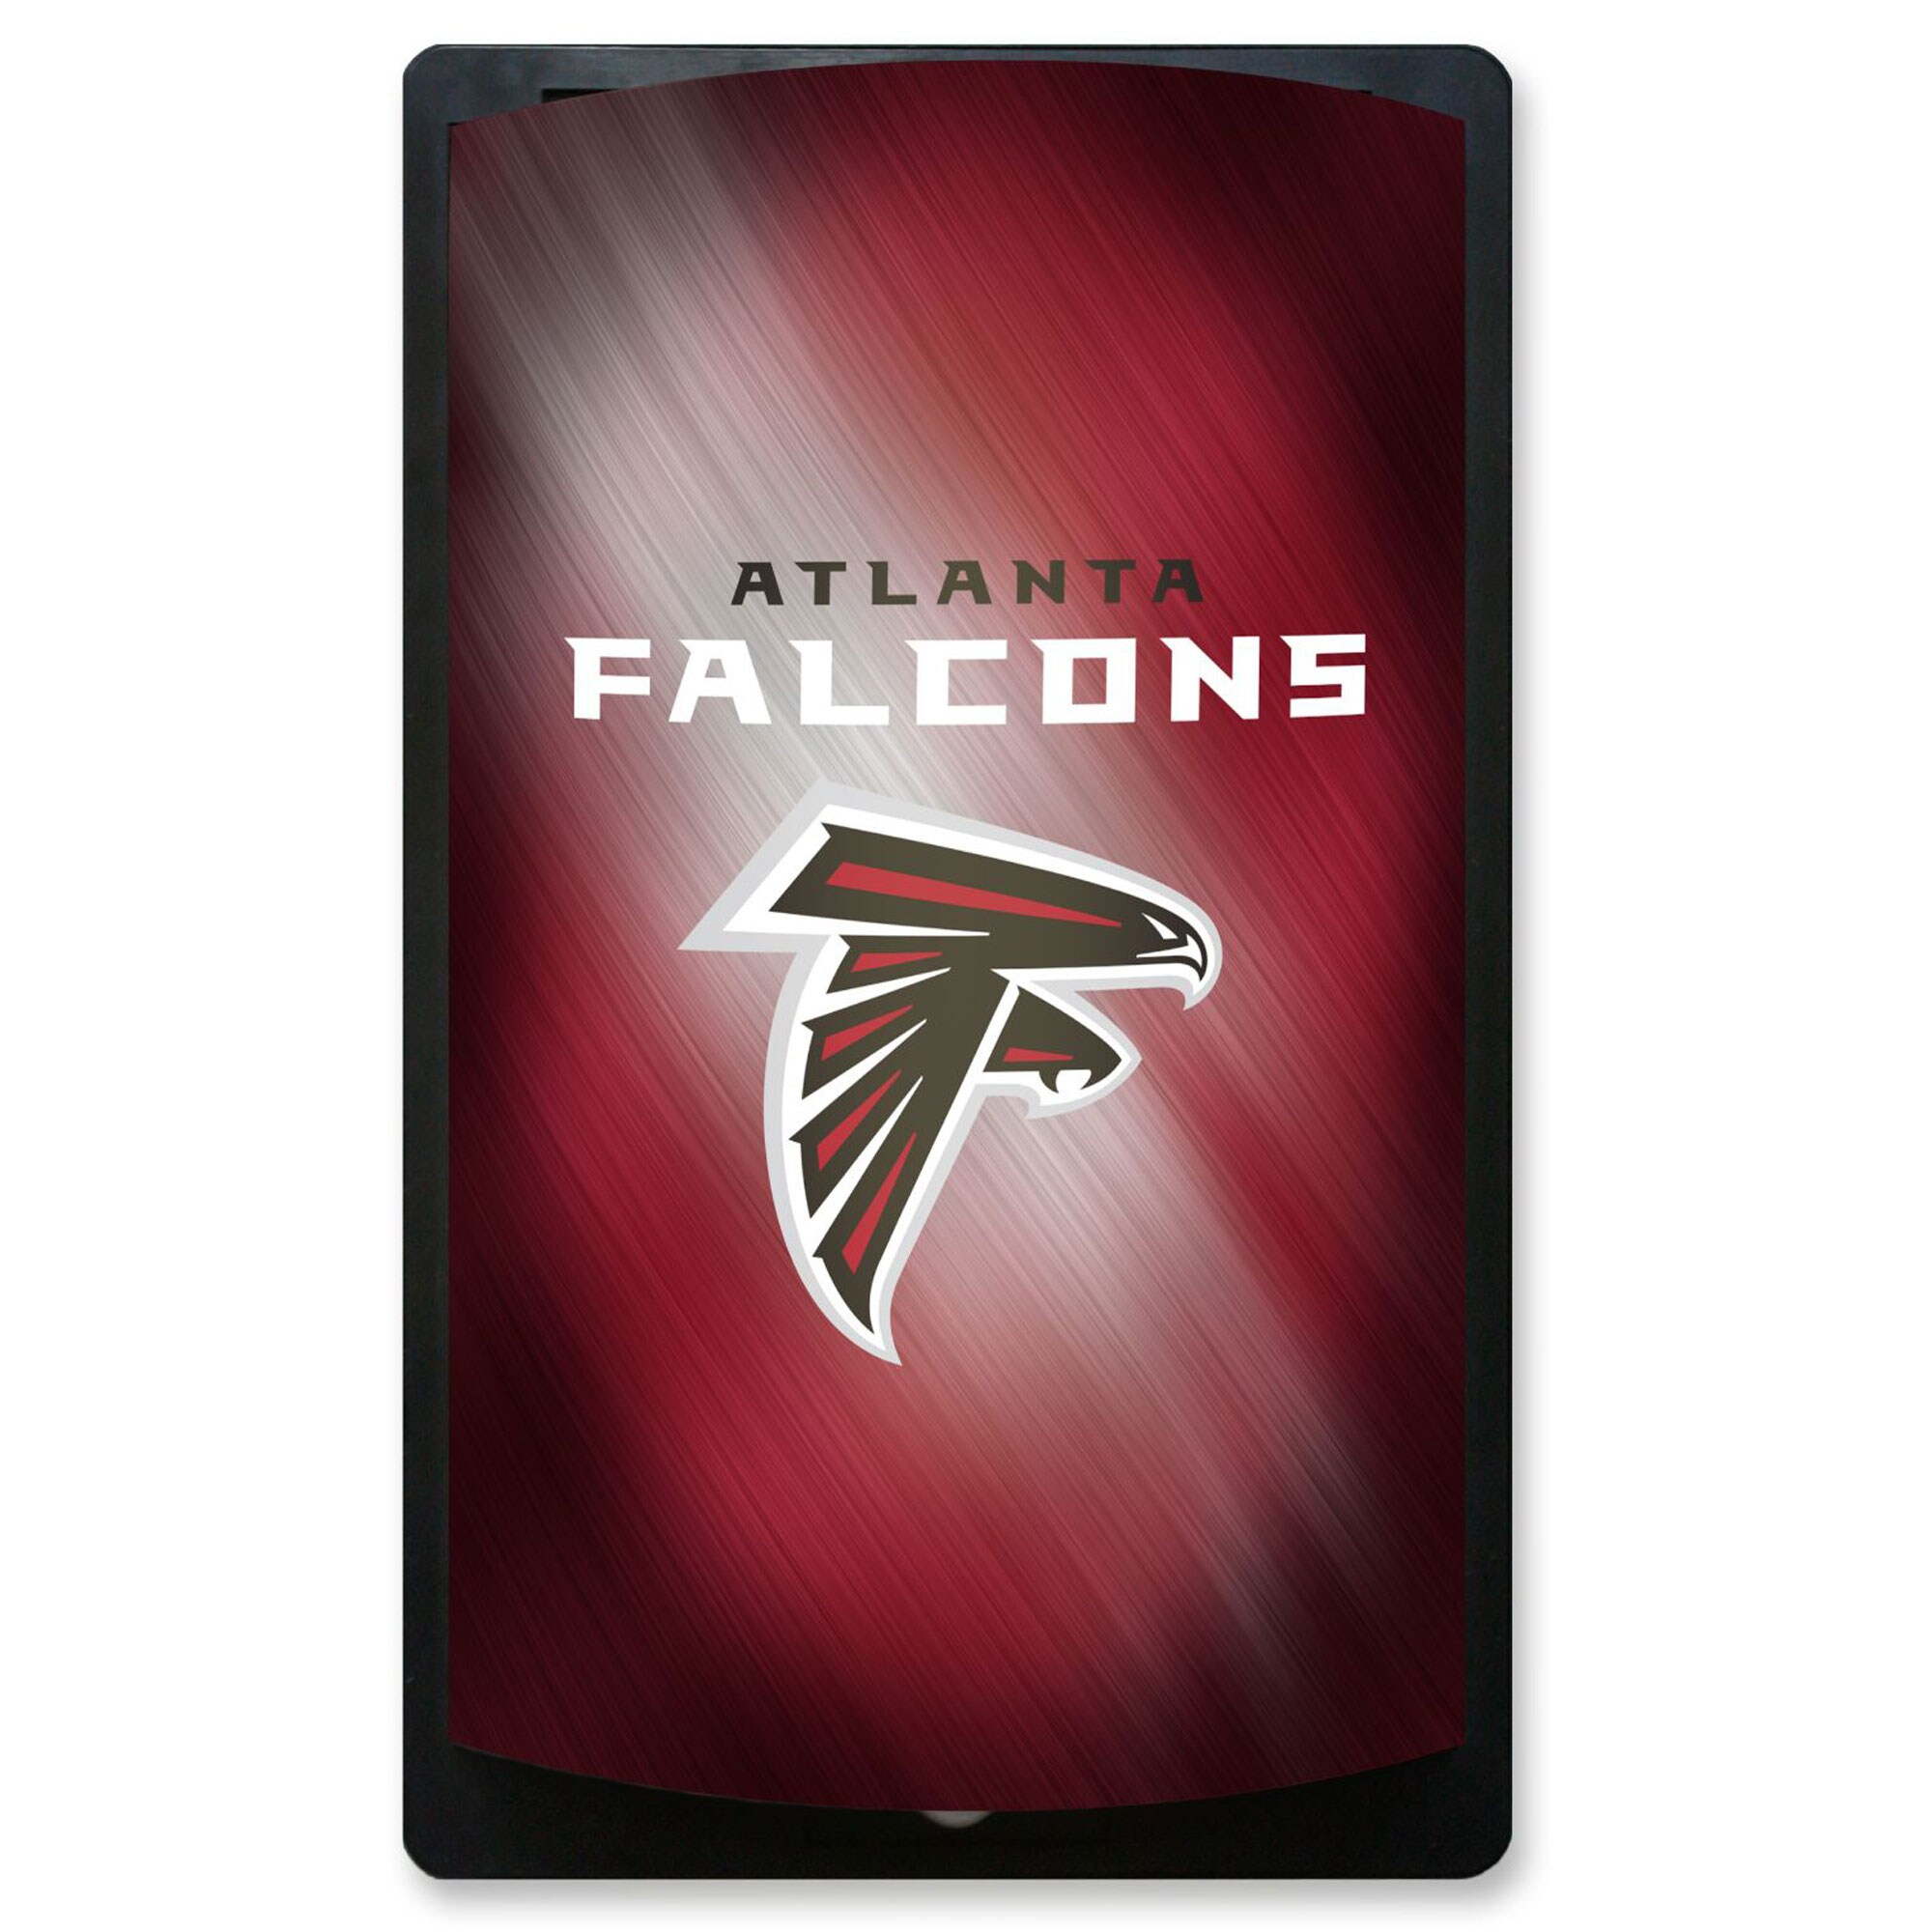 Atlanta Falcons 12.5'' x 7.5'' MotiGlow Sign